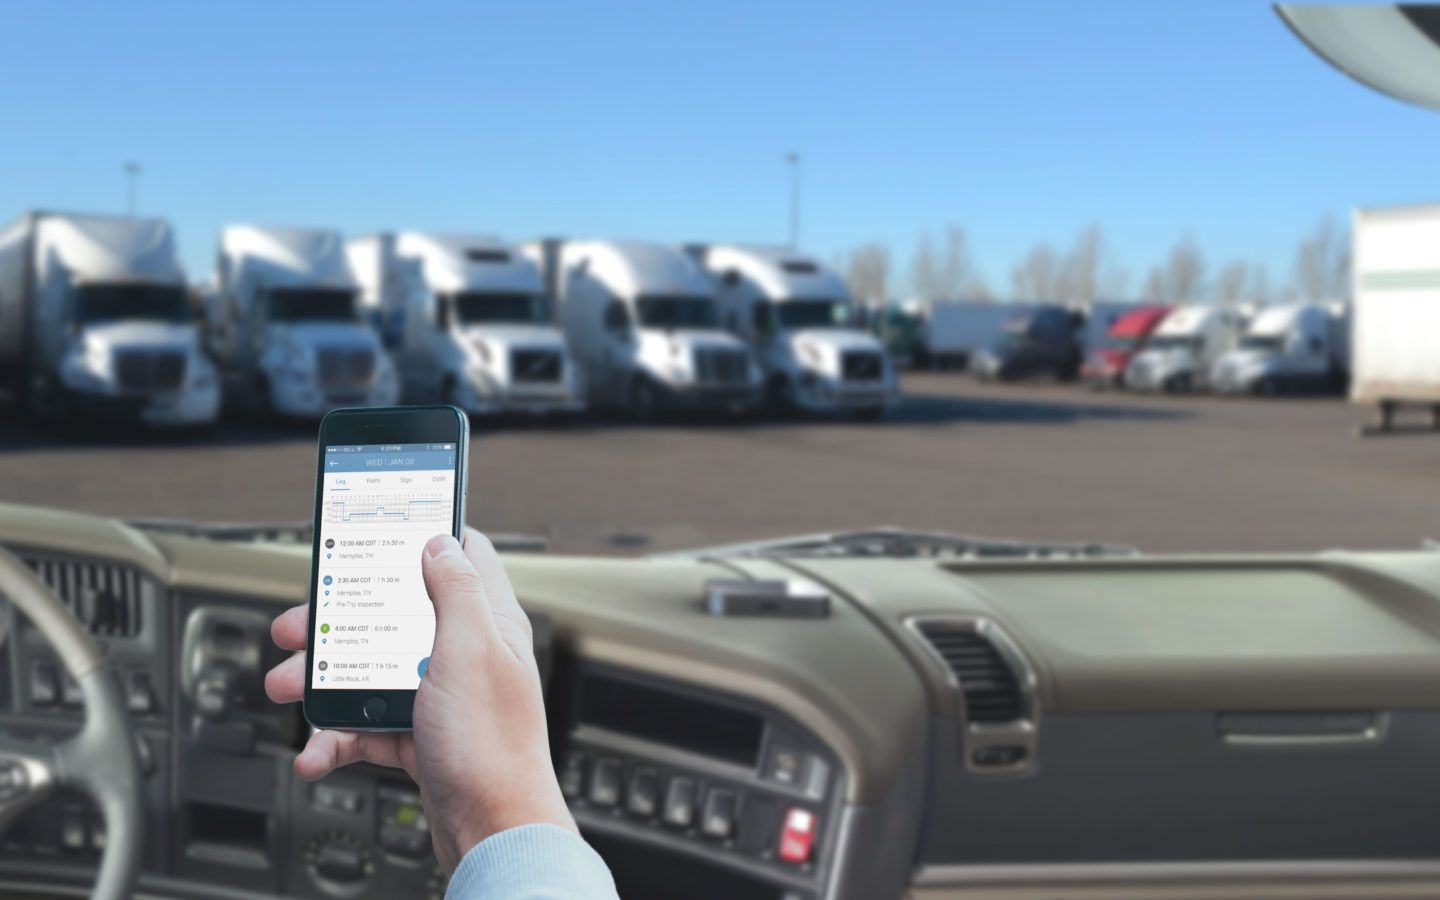 A truck link app for mobile devices is an excellent